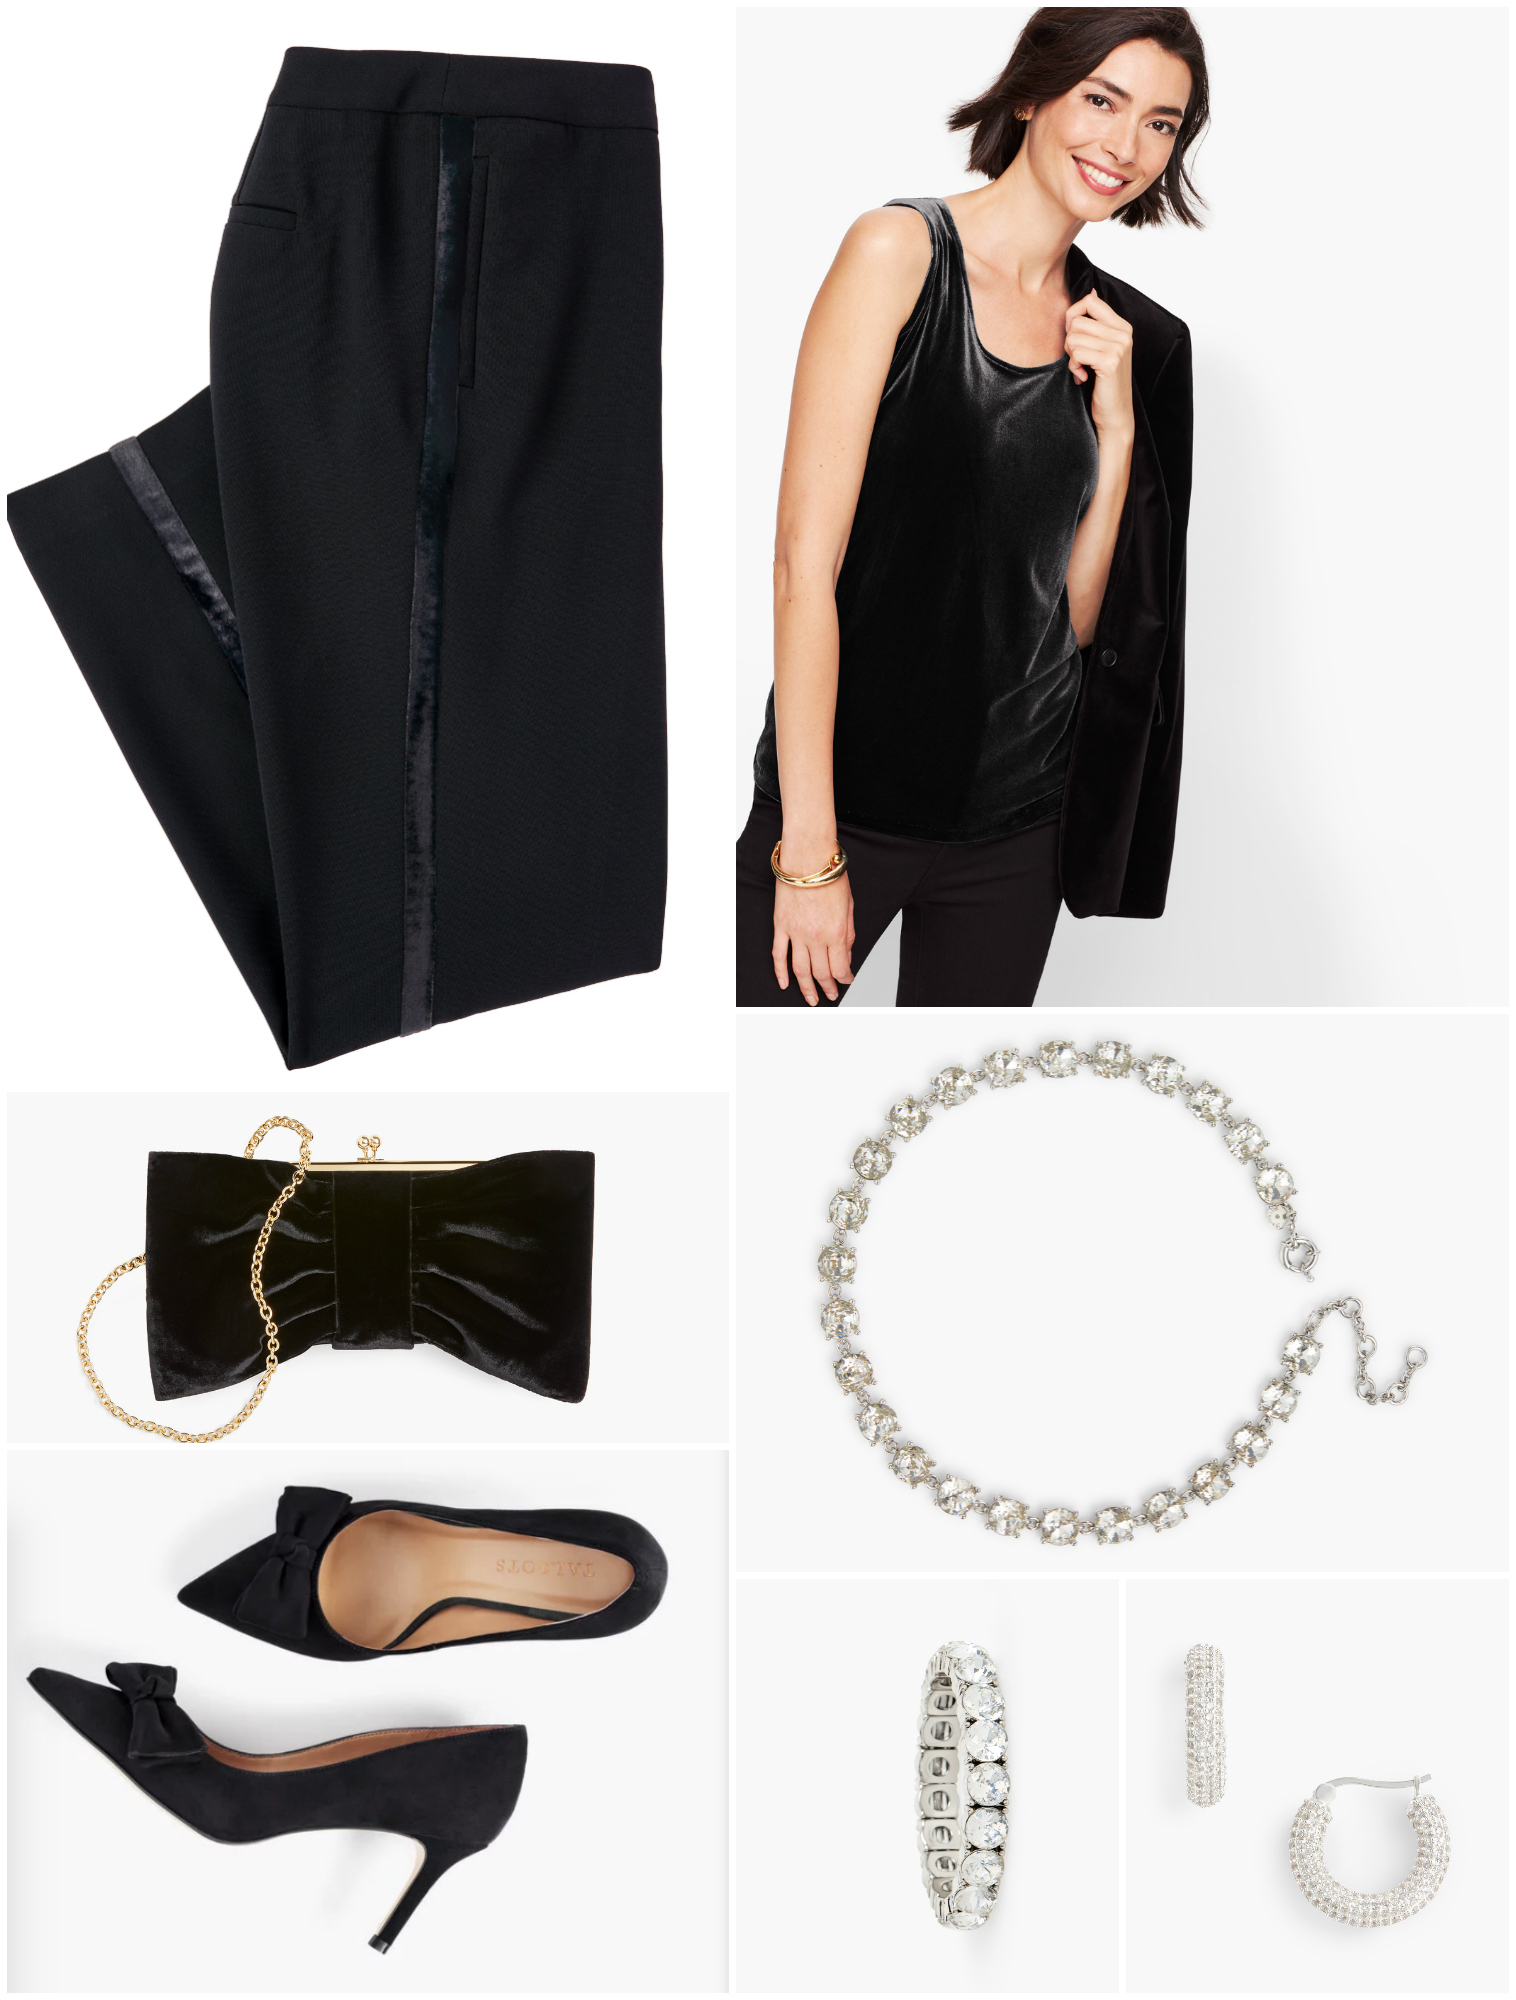 With great-fitting tuxedo trousers and a soft velvet tank with drape, it's a complete look without a jacket.  Add plenty of sparkly crystal jewelry and heels for formality.